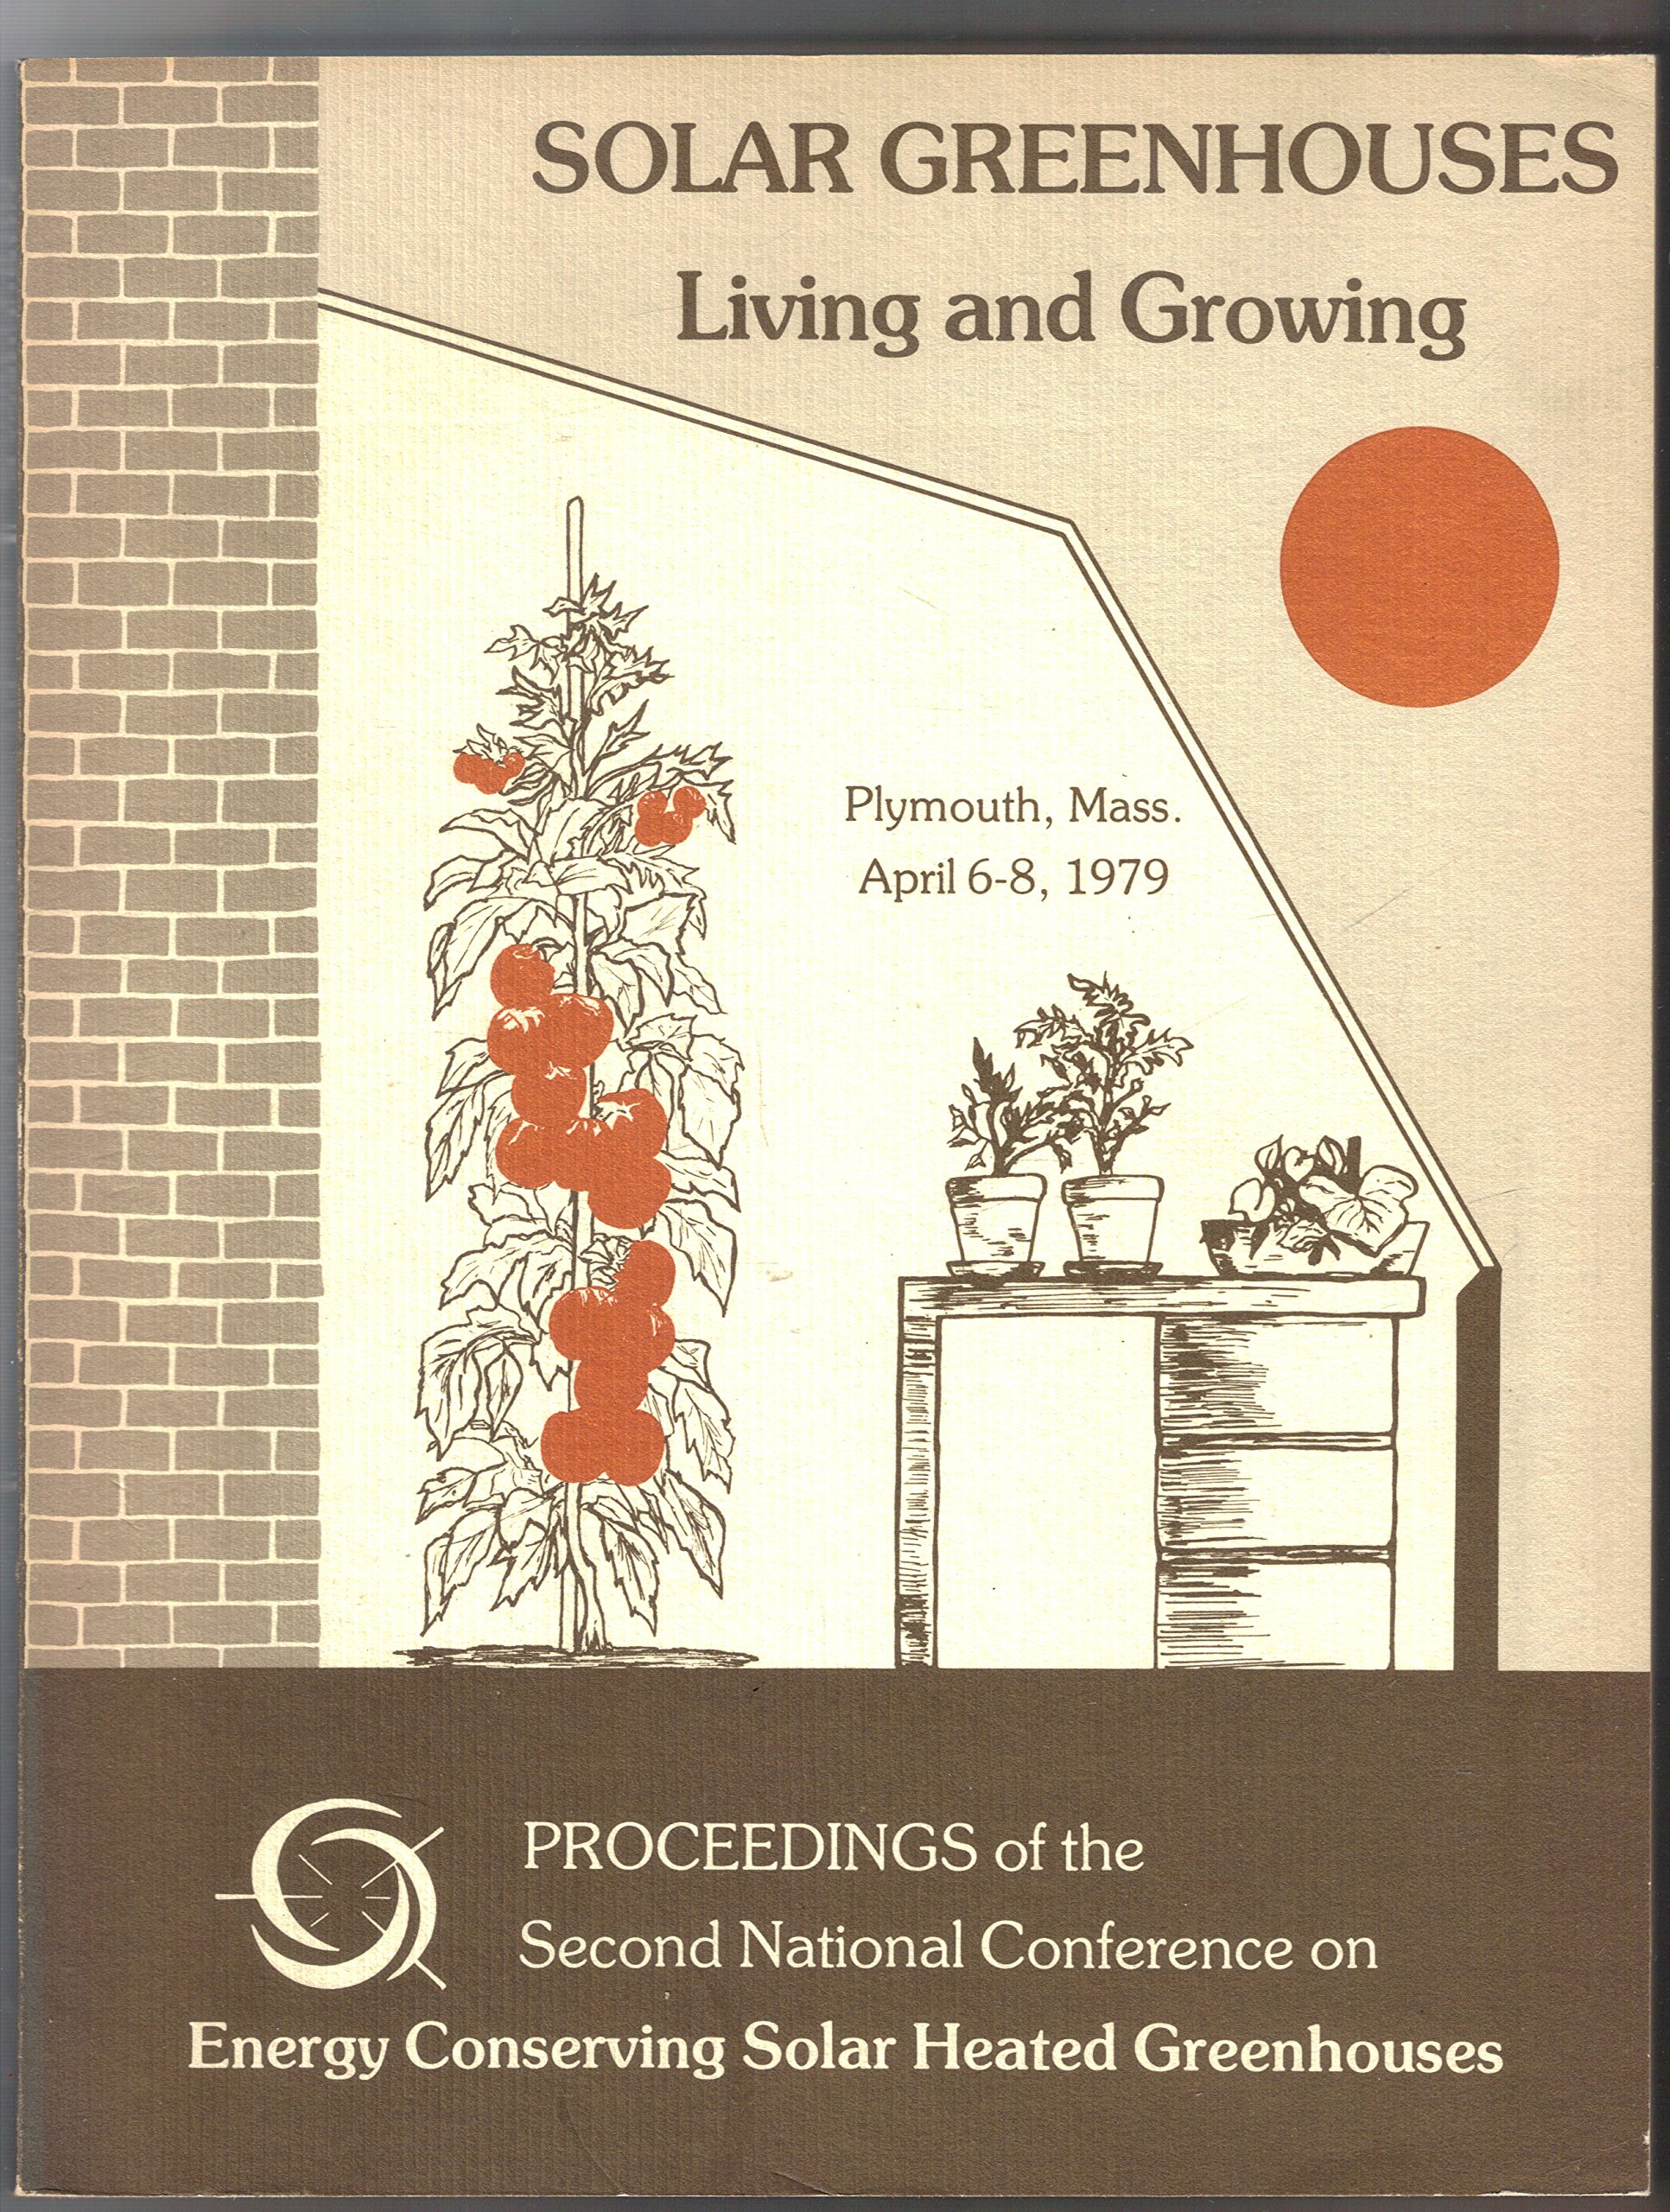 Solar Greenhouses: Living and Growing (Proceedings of the Second National Conference on Energy Conserving Solar Heated Greenhouses, Plymouth, Mass. April 6-8, 1979)